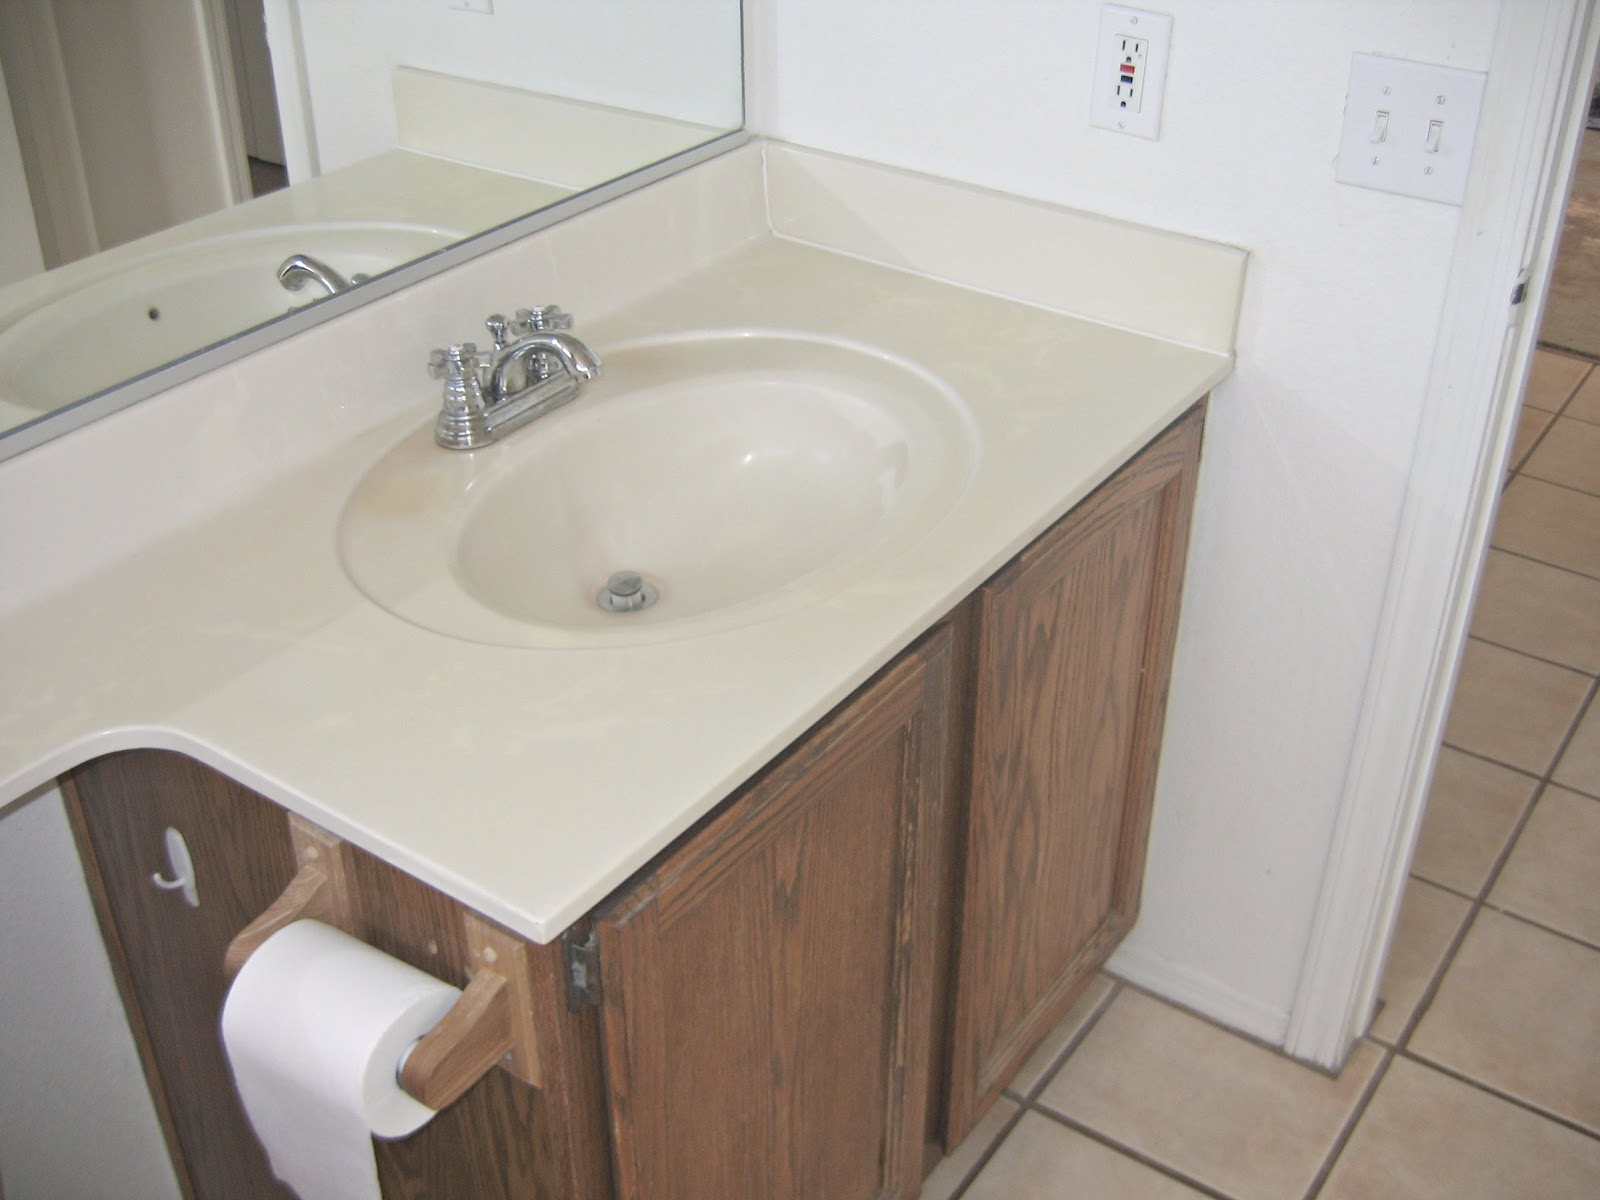 All in one bathroom sink and countertop - All In One Bathroom Sink And Countertop 3